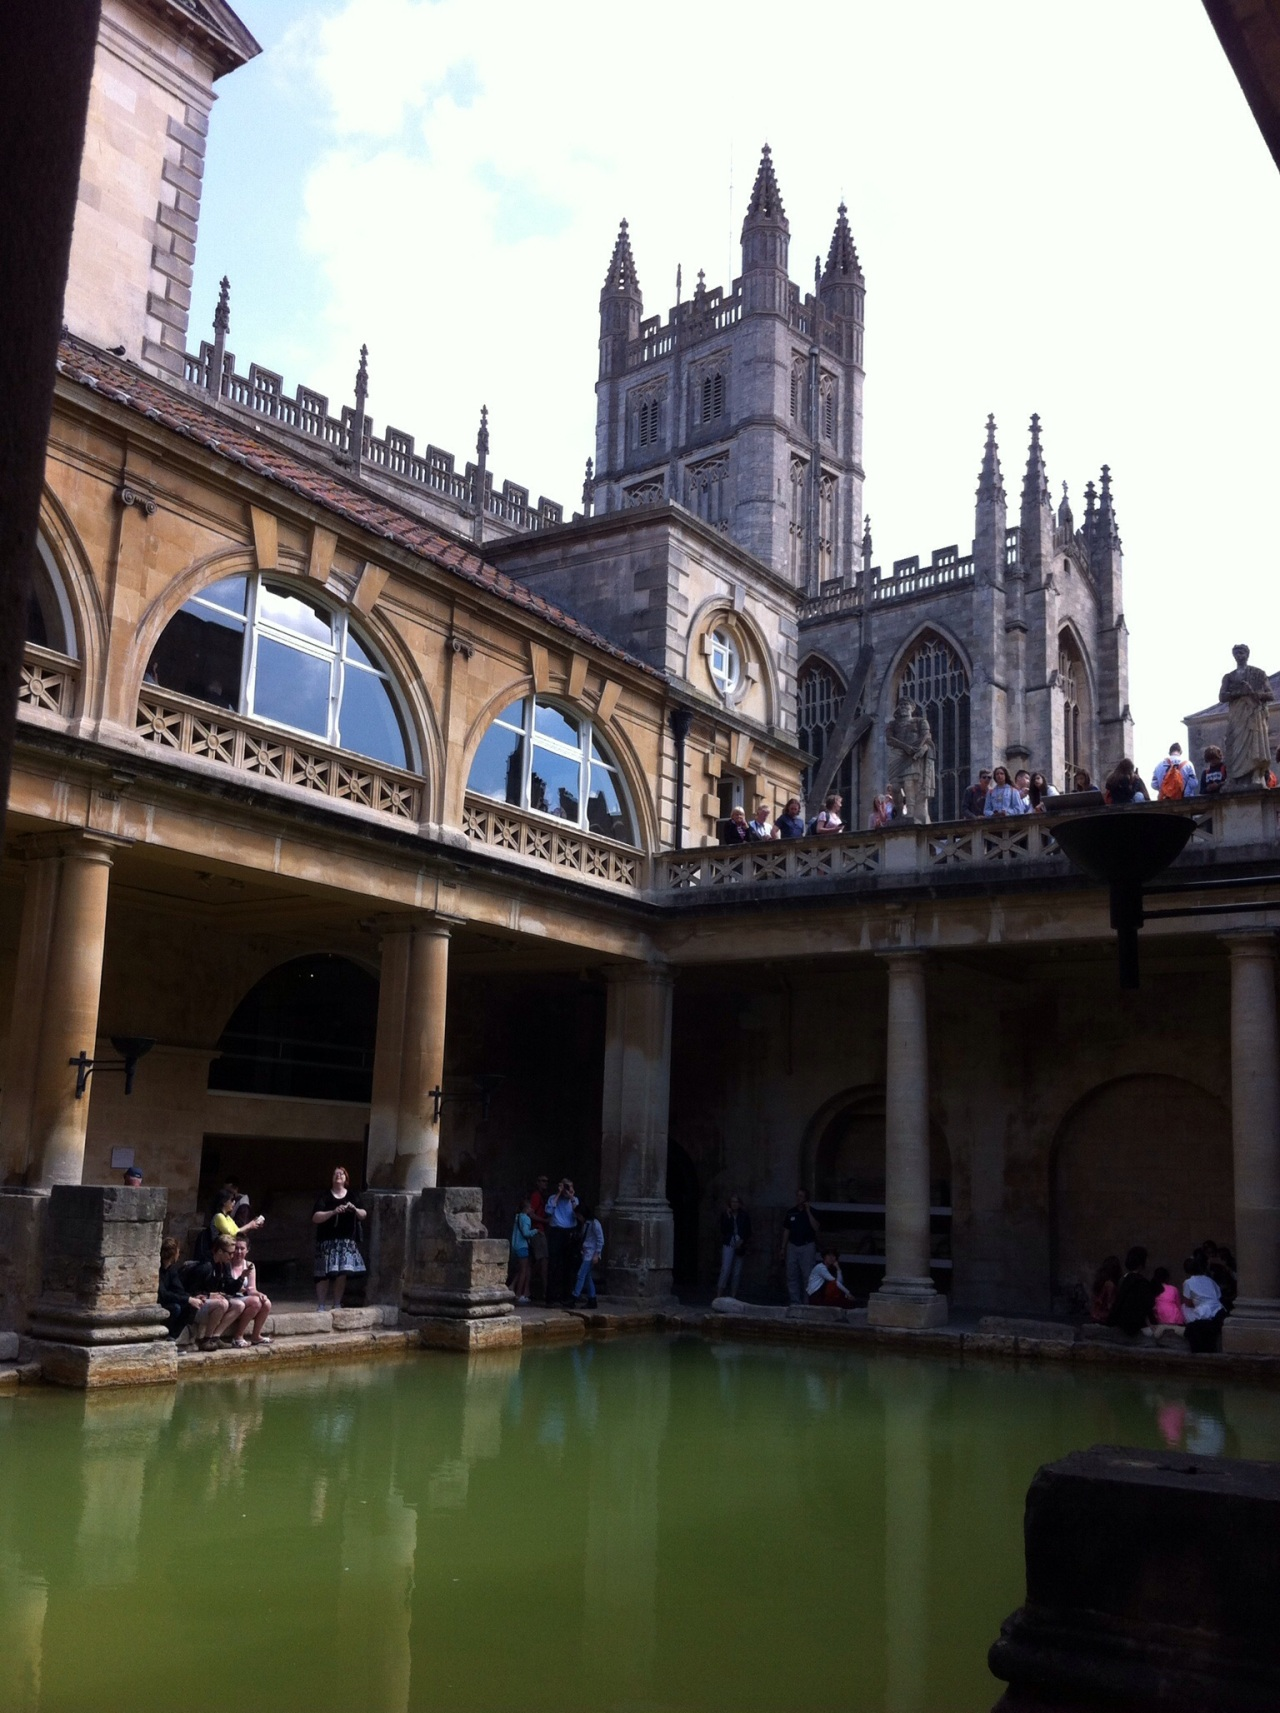 After having worked your way downstairs, through the excellent exhibits on life in the former Aquae Sulis, you look up and one of the best views of the city is here, up towards Bath Abbey. [Photo by me, 2015.]